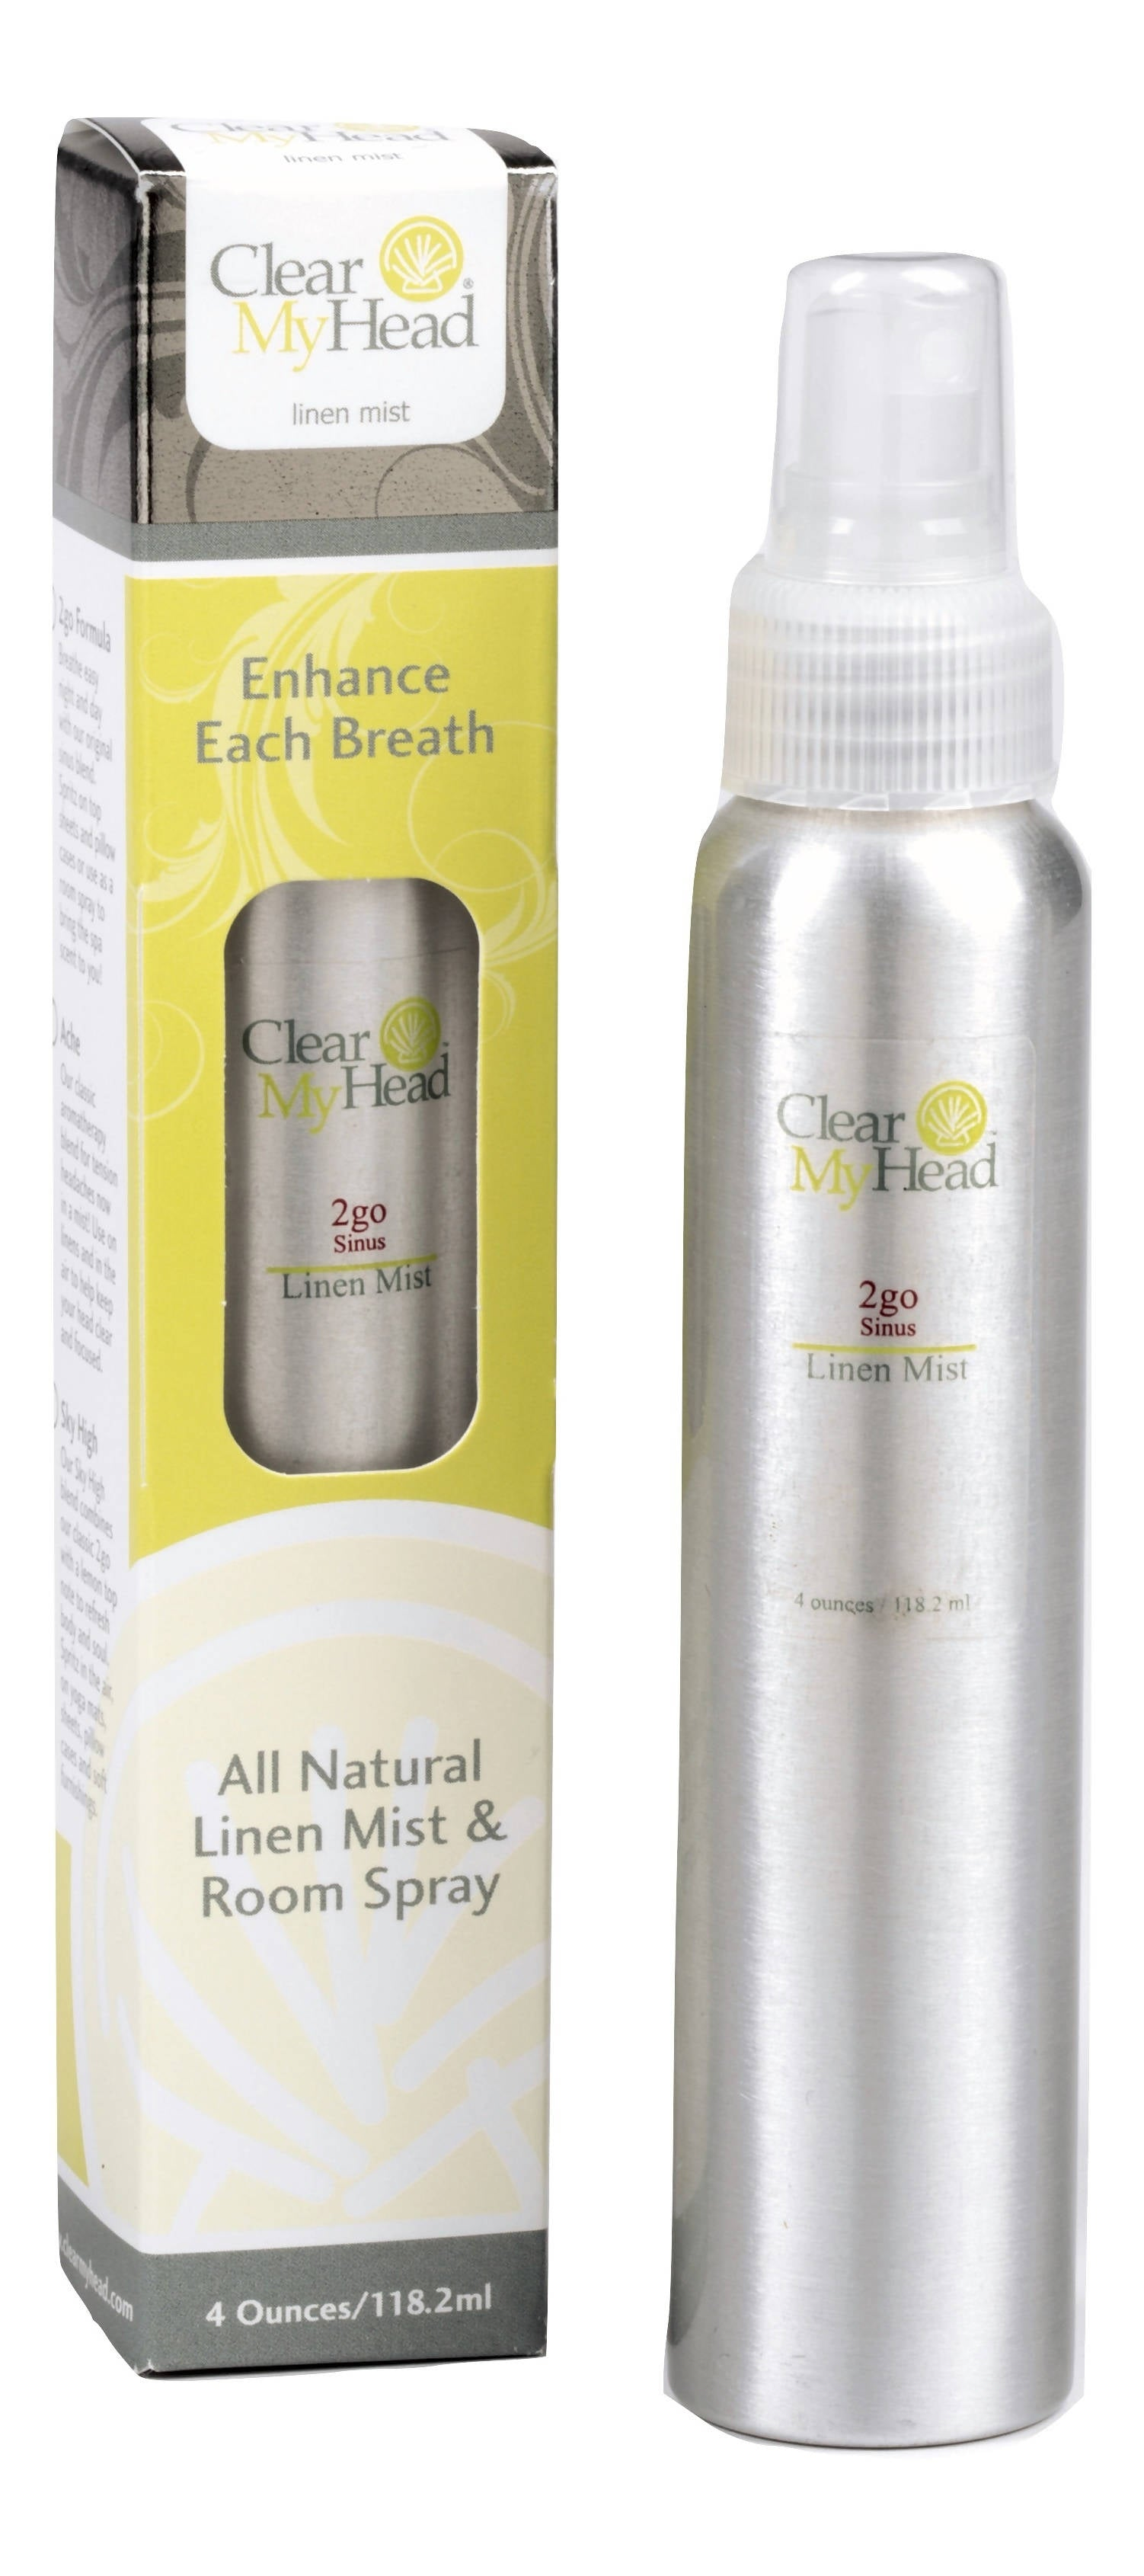 4 oz. Pump, Clear My Head Linen Mist (Original Scent)